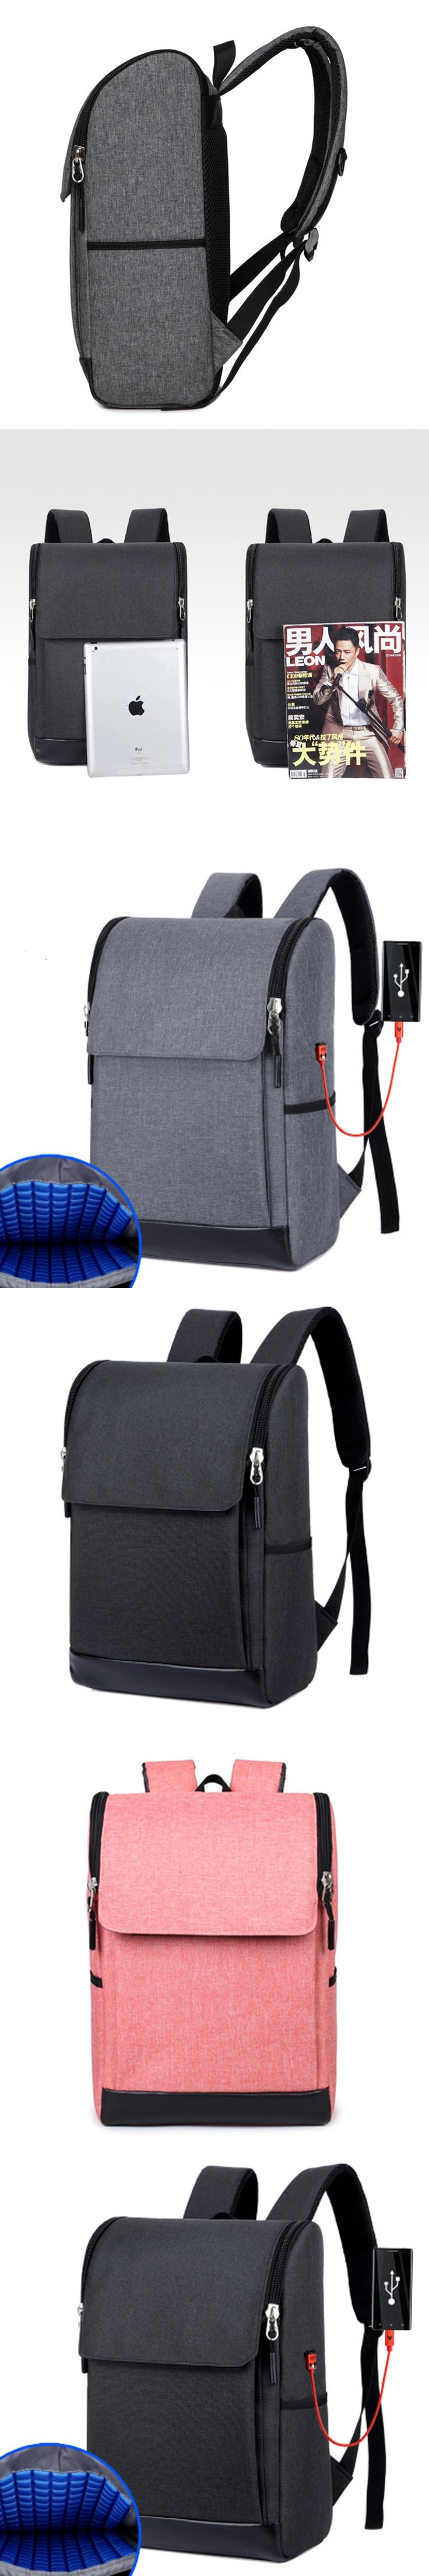 Laptop Backpack External USB Charge Computer Backpacks Anti-theft Waterproof Bags For Macbook Lenovo Samsung Acer For Men Women